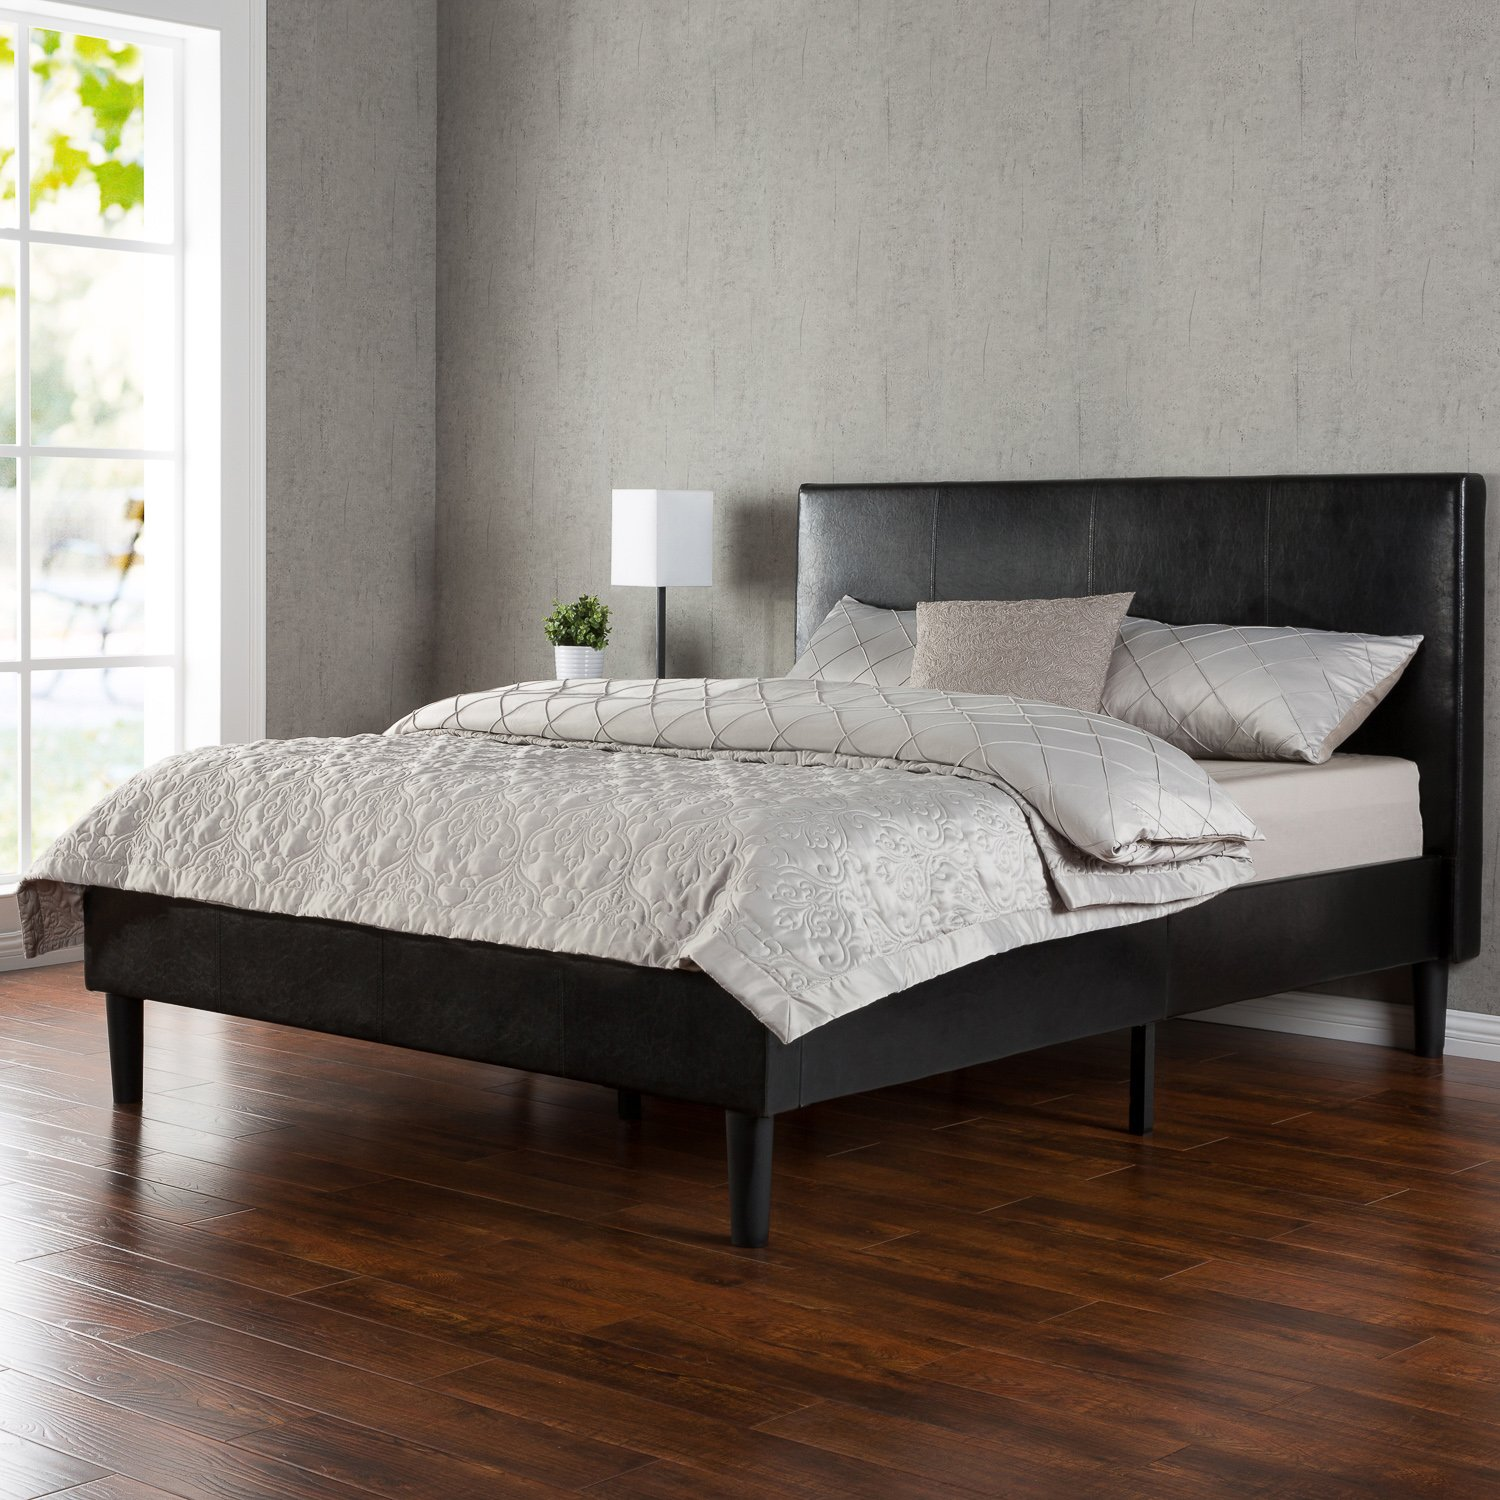 Zinus platform beds sale ease bedding with style Wood platform bed